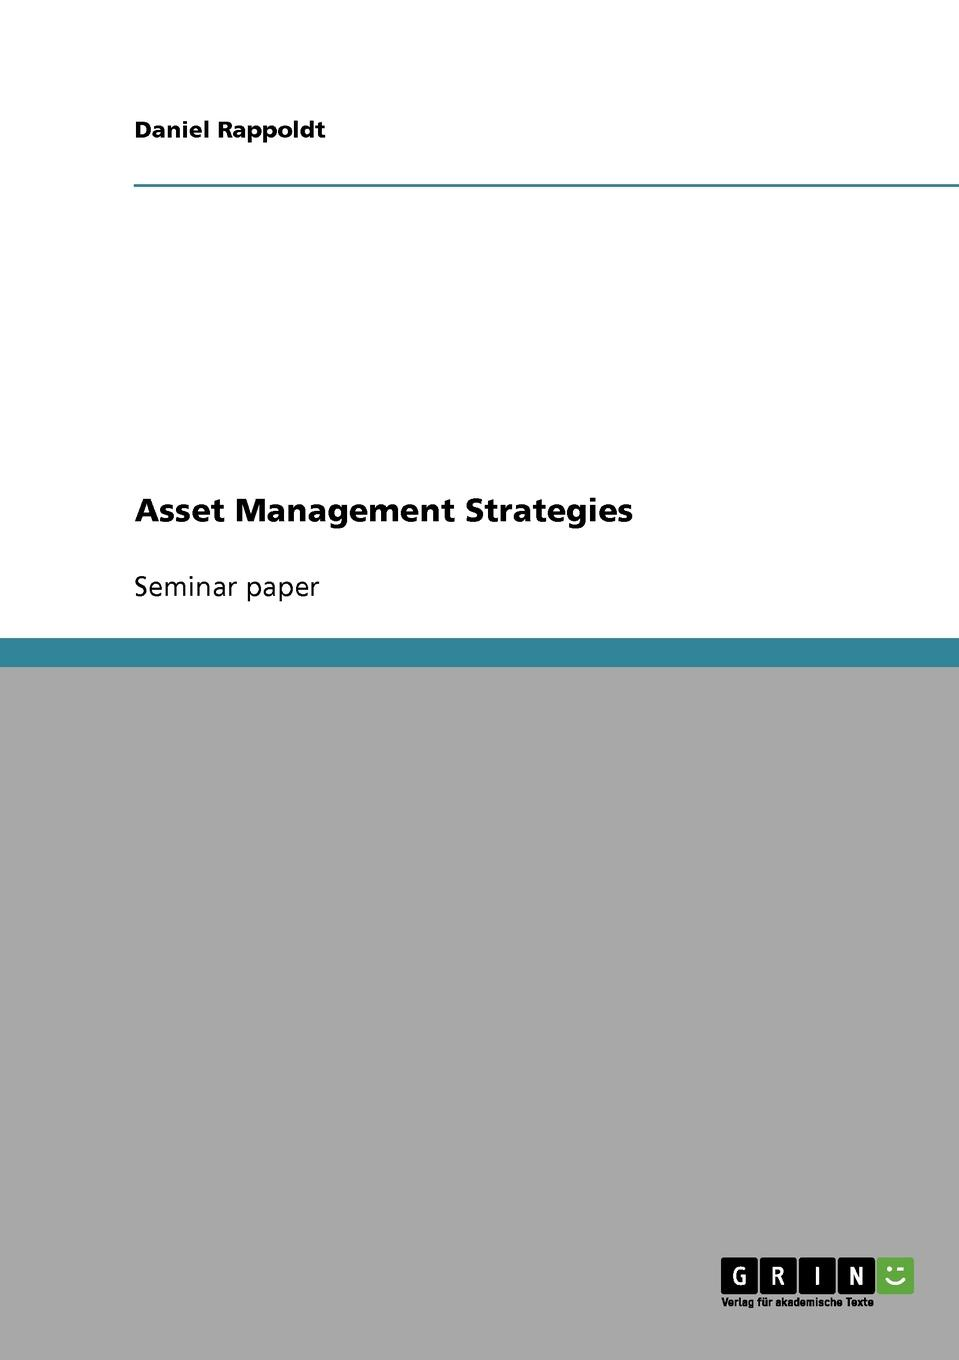 Daniel Rappoldt Asset Management Strategies david parker global real estate investment trusts people process and management